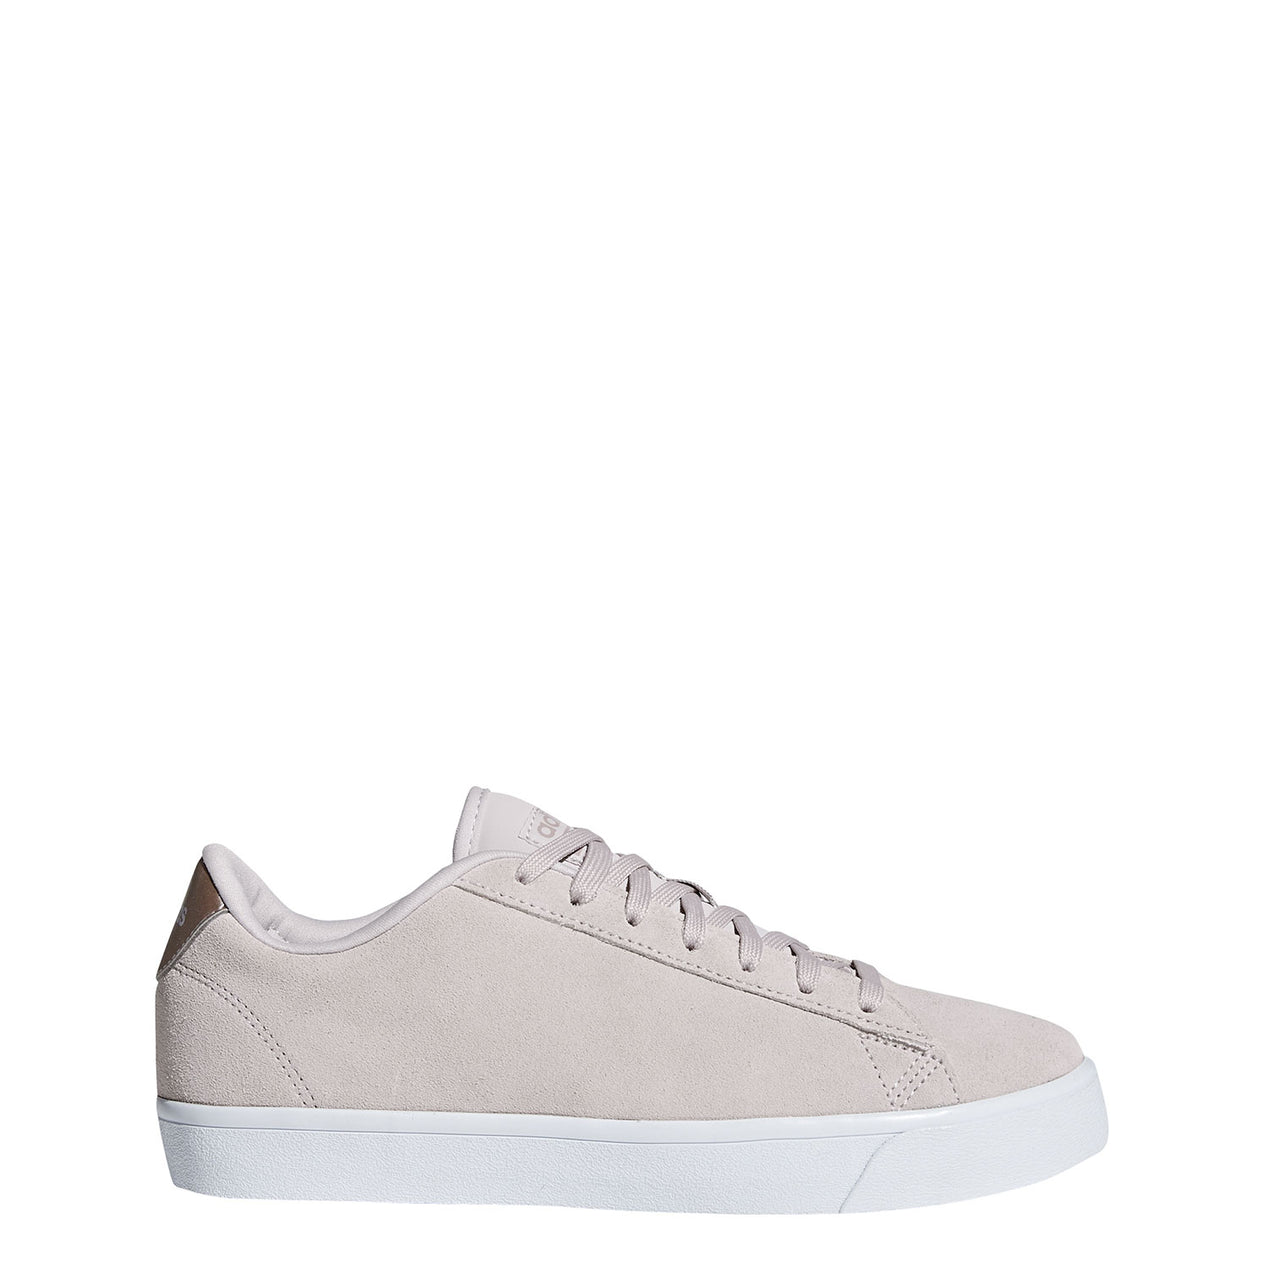 the best attitude 6b9b4 9a413 Adidas Chaussures Cloudfoam Daily Qt Clean Ice Purple Femme